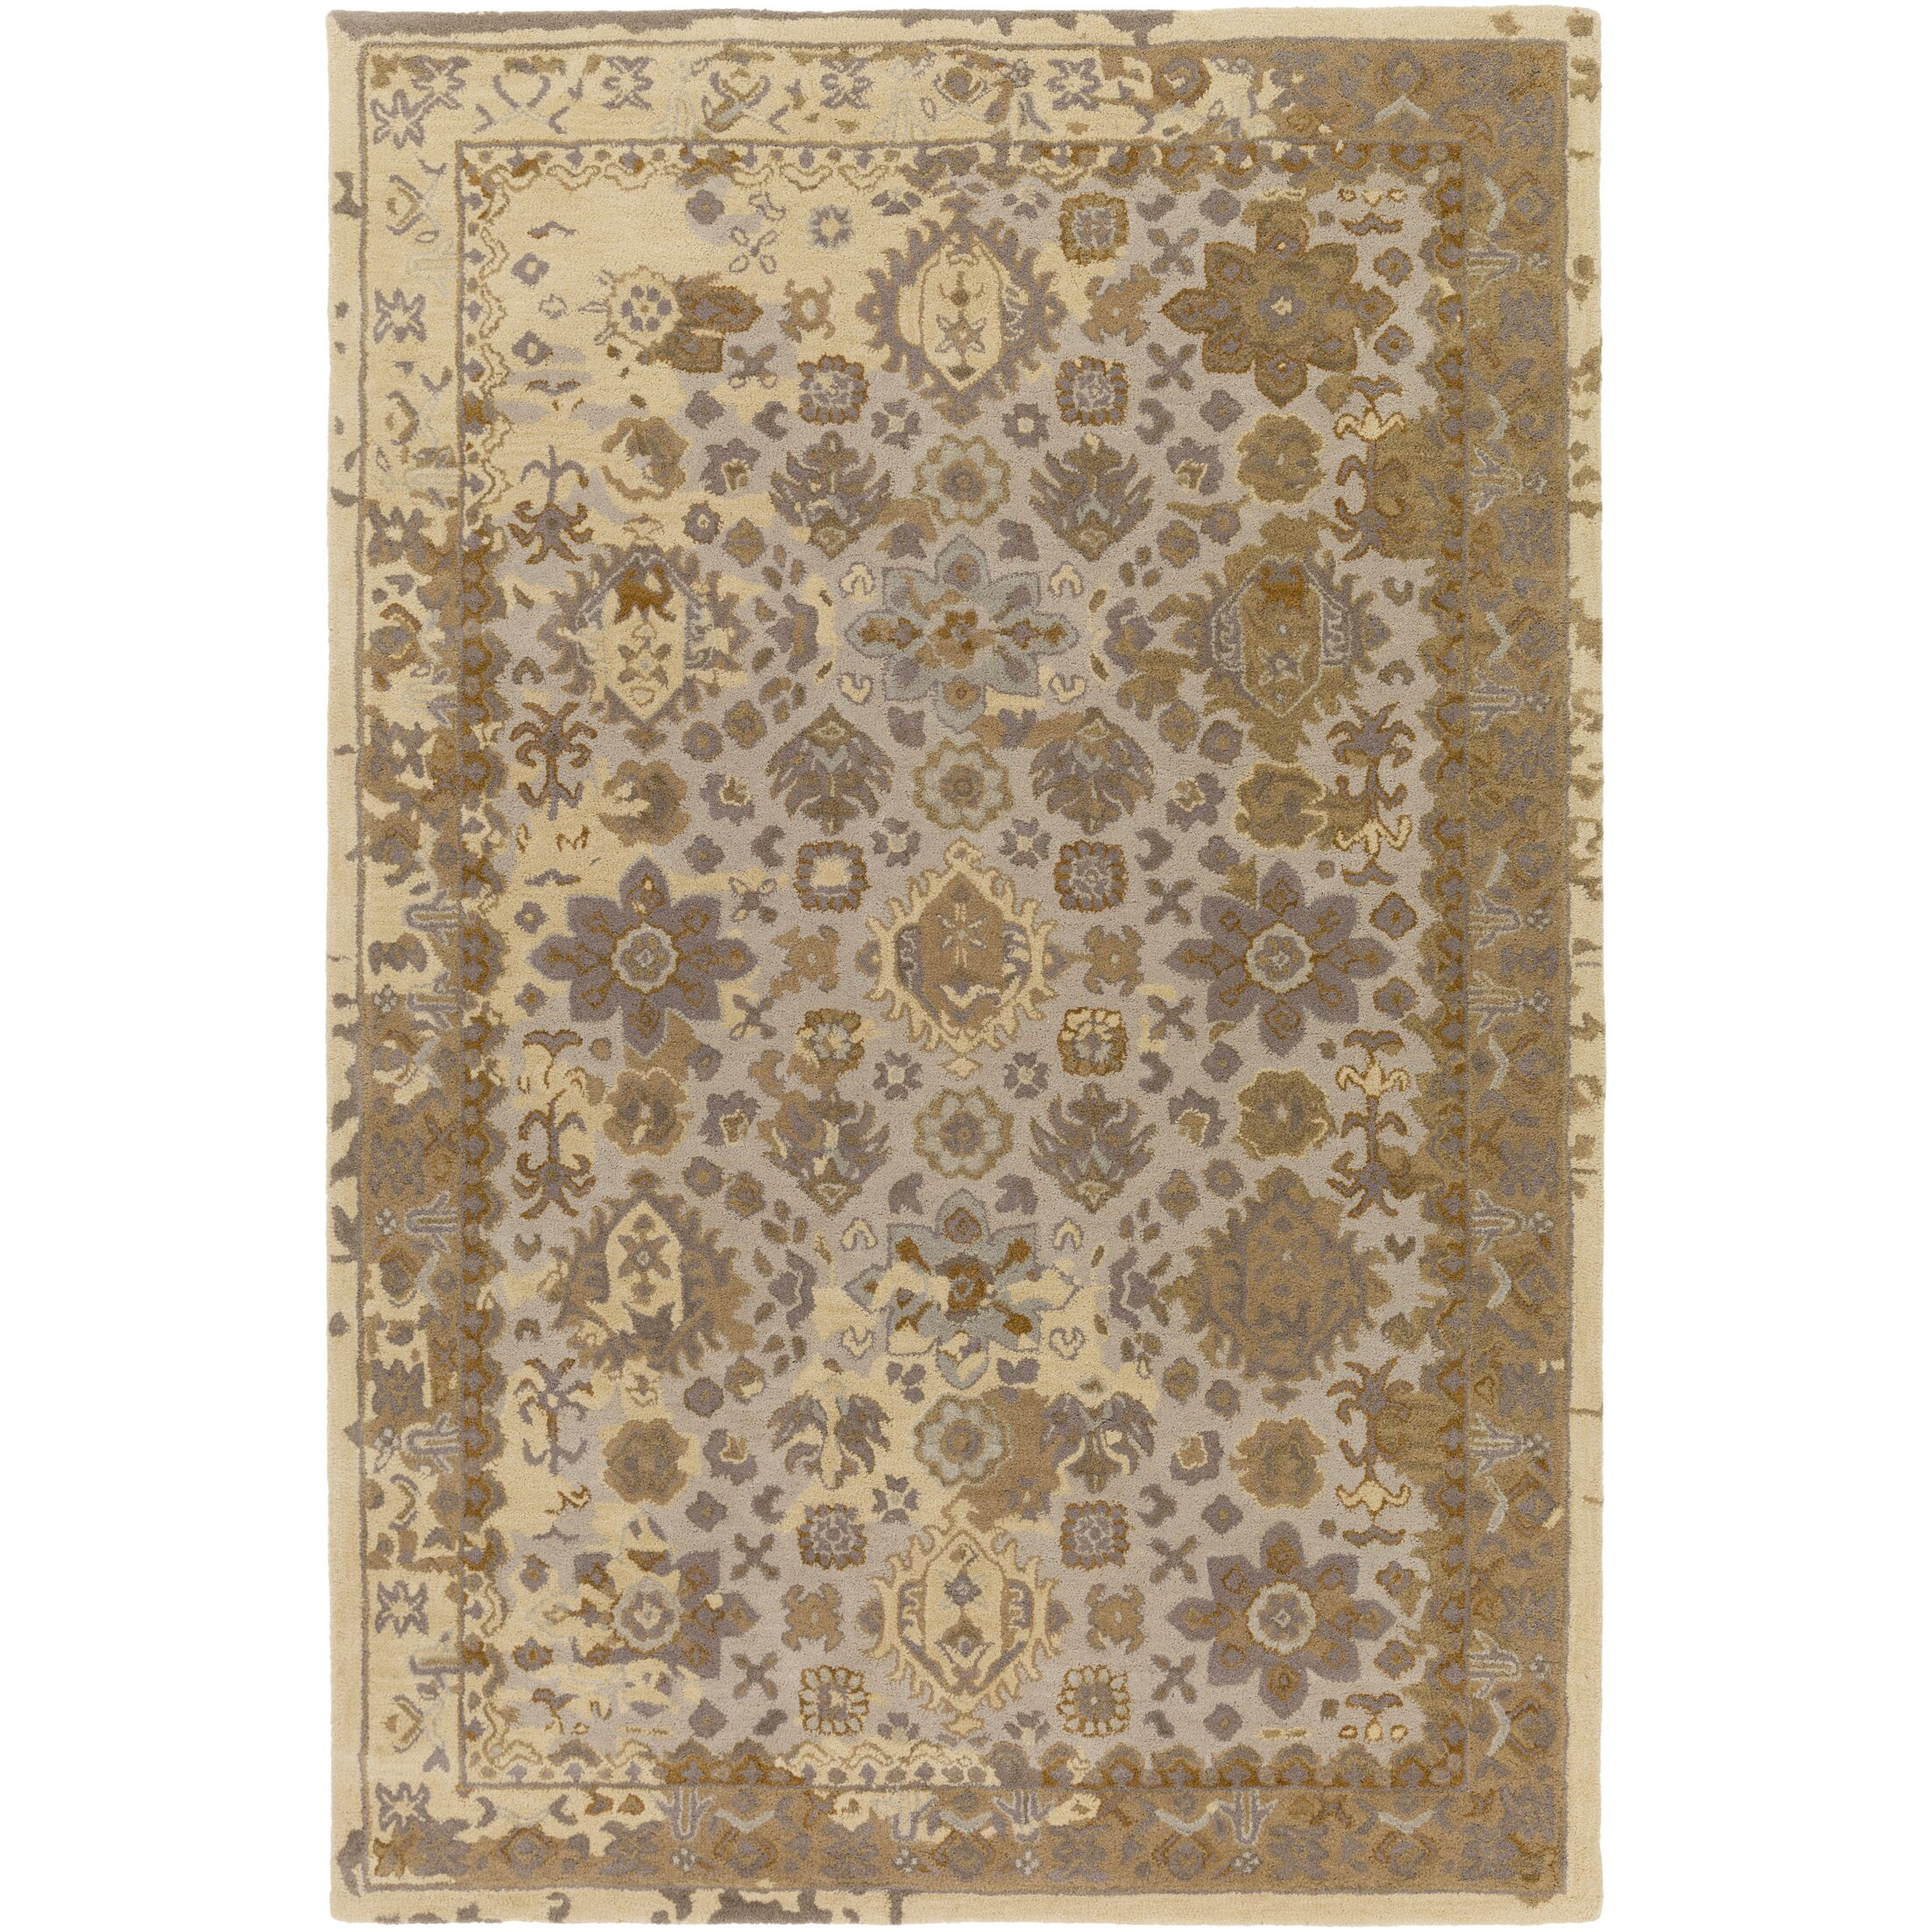 Ivan Hand-Tufted Tan Wool Area Rug Rug Size: Rectangle 4' x 6'